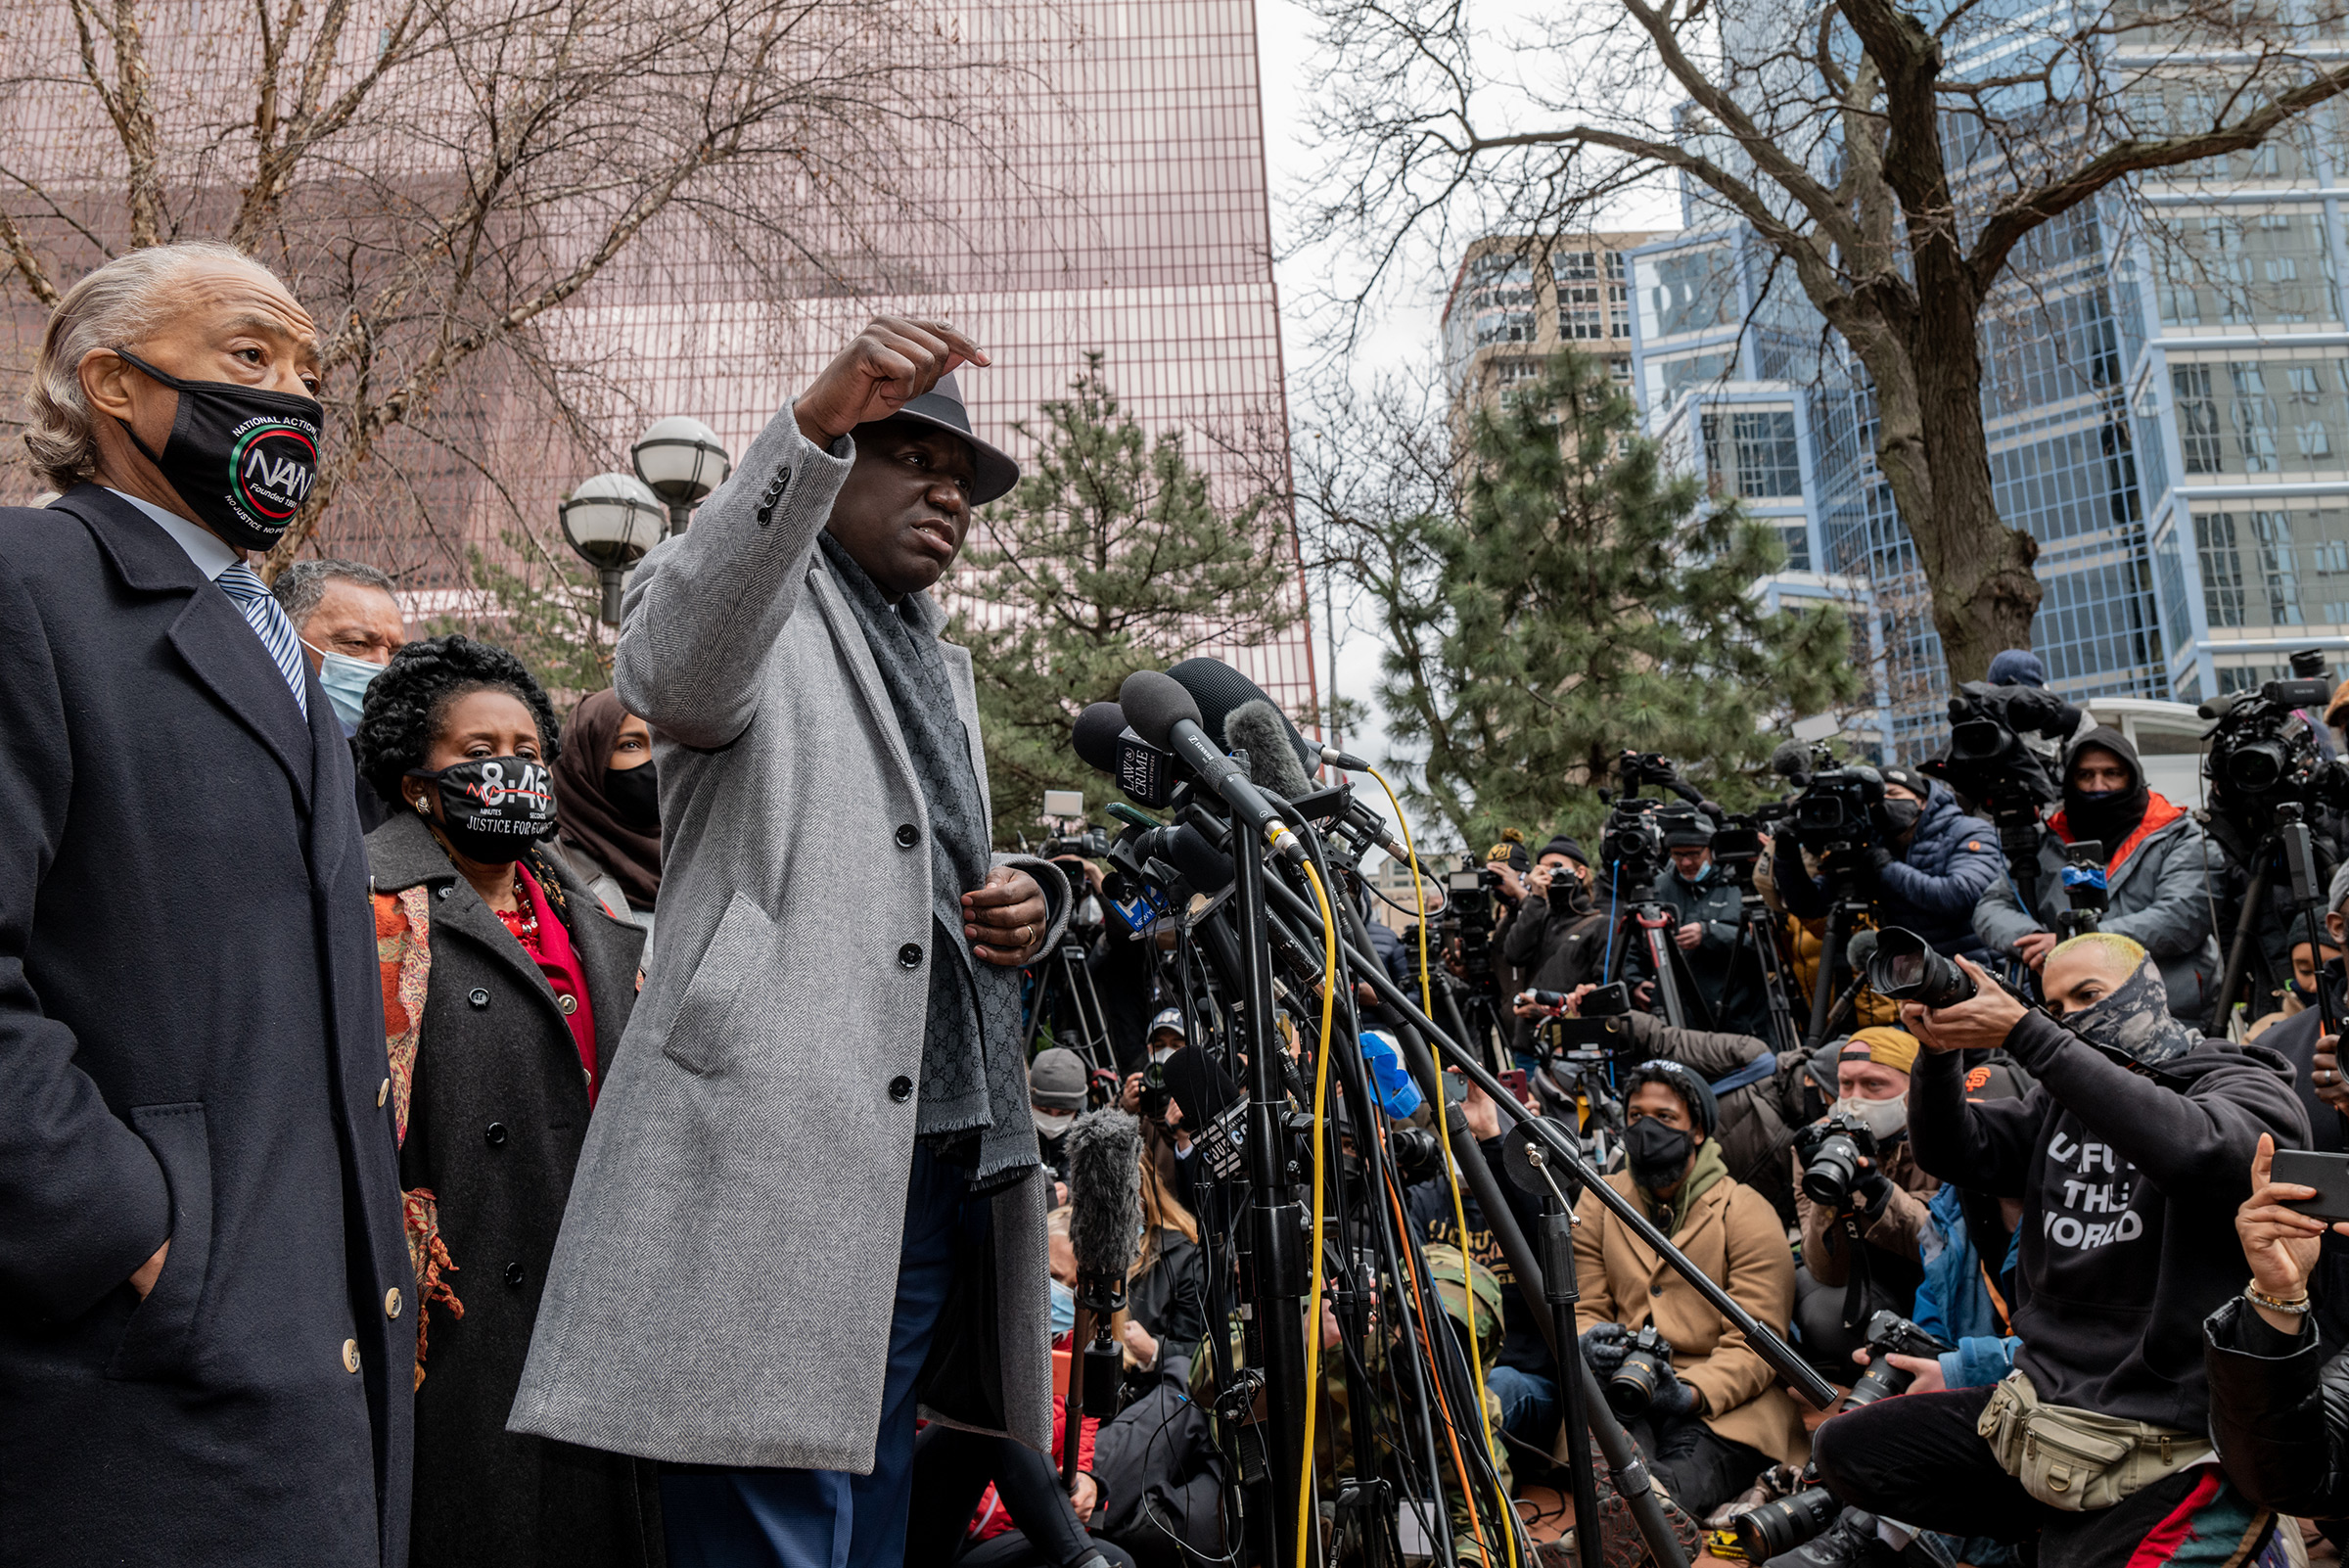 Attorney Ben Crump speaks before the Rev. Al Sharpton and leads a prayer outside of the courthouse during closing arguments in the Chauvin trial in Minneapolis on April 19.